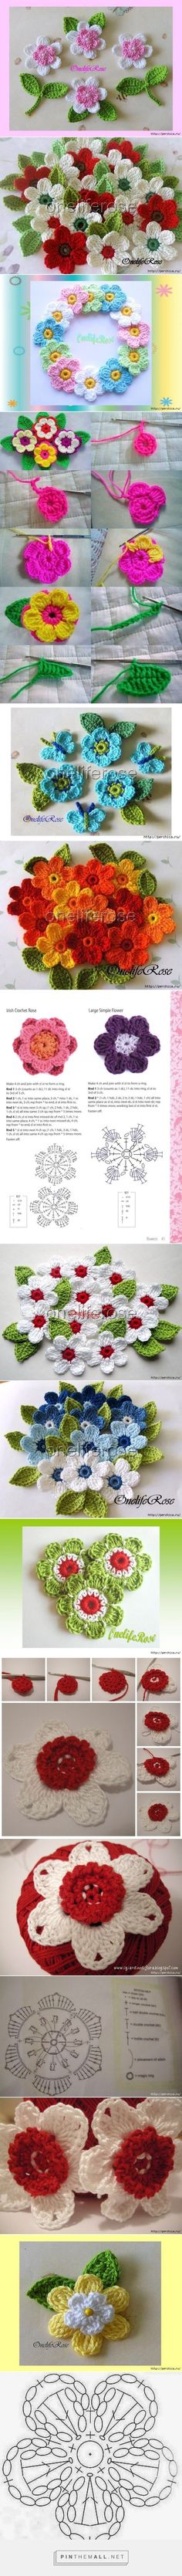 Flores de ganchillo Find and save knitting and crochet schemas simple recipes and other ideas collected with love Crochet Hearts Flower Crochet Crocheted Flower Love Crochet, Crochet Motif, Diy Crochet, Irish Crochet, Crochet Crafts, Crochet Doilies, Crochet Stitches, Crochet Projects, Crochet Lovey